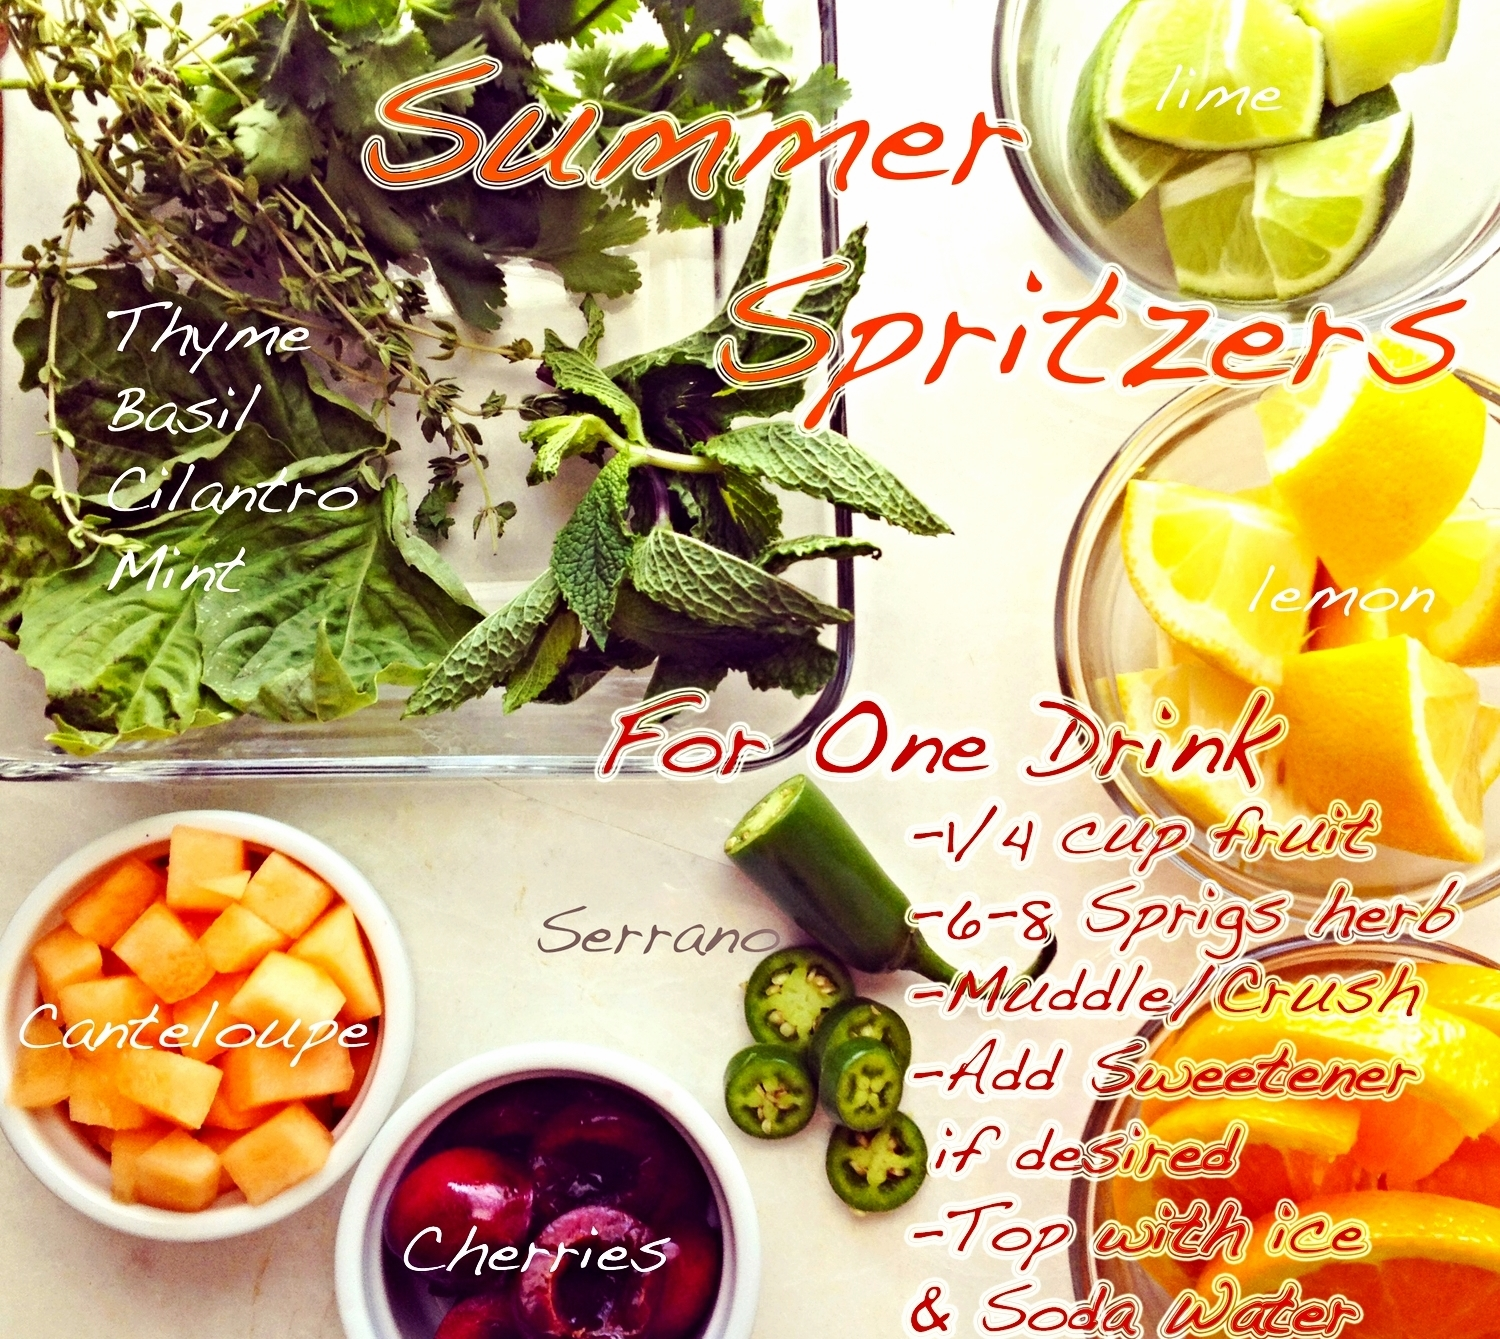 """Make your Own: Summer Fruit and Herb Spritzers  Looking for some new and refreshing summer beverages? Look no further because the possibilities are endless with the bountiful options of Summers harvest. For many years I workedin restaurants and spent most of my time behind the bar slinging cocktails so drinks are kind of my thing. Some of my favorite concoctions would always start the same way:   Some type of fresh fruit/citrus (cherries, cantaloupe, orange, lemon, lime etc)  Some type of fresh herb (cilantro, thai basil, mint, thyme, parsley etc)  Sweetener (ex honey(raw if possible), lacuma powder , yacon syrup ,maple syrup,stevia etc)  Alcohol/Wine/Cordial or Soda Water / Juice for a Mock-tail  This formula gives you alot of wiggle room to be creative and make some fun and interesting drinks. There is no reason you need to spend $13 to have a special beverage when you have all the ingredients you need right at your fingertips. And do not feel like you have to use alcohol to make these, I don't drink alot so I make all of these as """"mock-tails"""" (no alcohol) and I think they rock!   Some of my Favorite combos right now:    Spicy Melon Margarita    1/4 cup Cantaloupe +  10 Cilantro Leaves + 4 Serrano Pepper slices + 4 Lime Wedges + lacuma powder / yacon syrup /honey/Stevia+ pinch sea salt    Muddle and crush ingredients    Add 2 oz Tequila (optional)    Shake. Strain over fresh Ice top with soda water    Cherry Basil Spritzer   4 Basil Leaves + 4 Mint Leaves + 2 Slices Orange + 2 Wedges Lime + 6 Cherry halves +  lacuma powder / yacon syrup /honey/Stevia   Muddle and Crush Ingredients  Add 2 oz Campari or Aperol (or any Rose wine or white wine. Again alcohol optional)  Pour into large wine glass filled with ice  Top with Soda Water"""